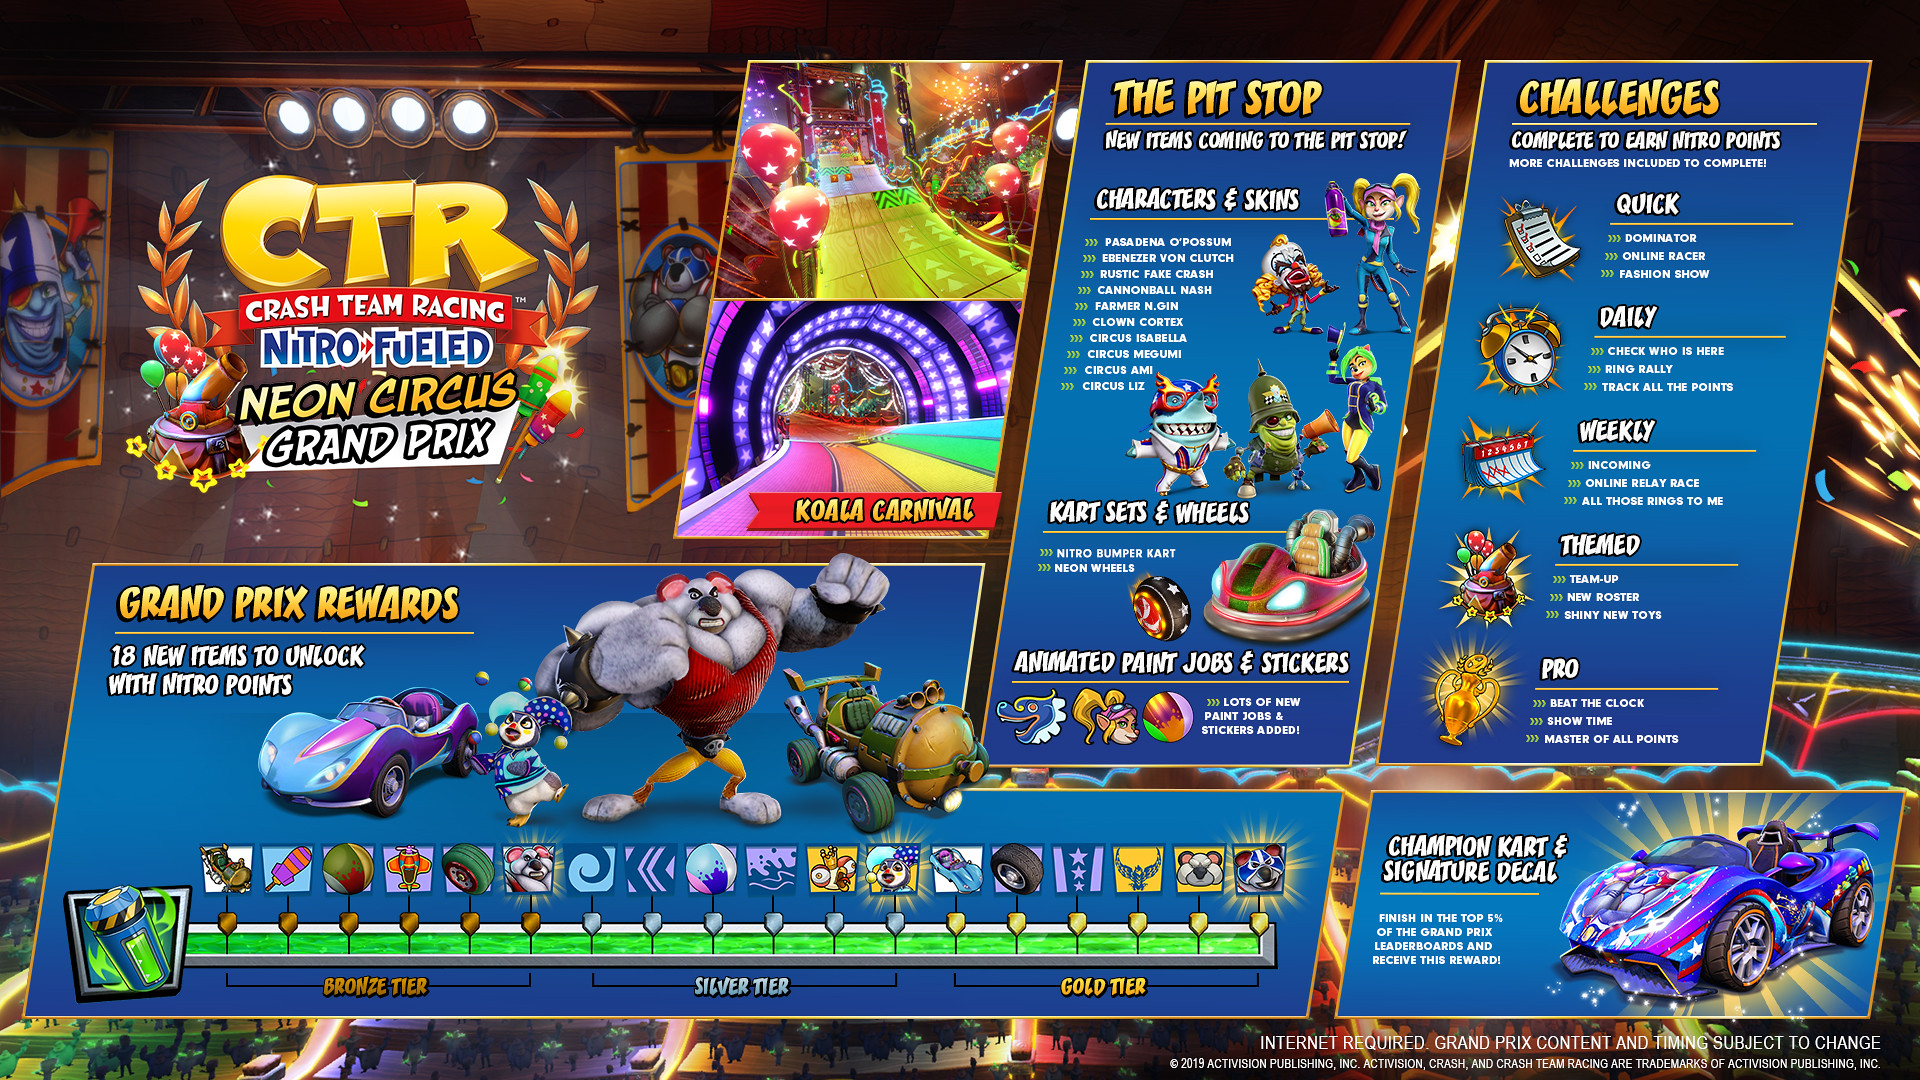 crash team racing nitro-fueled rewards